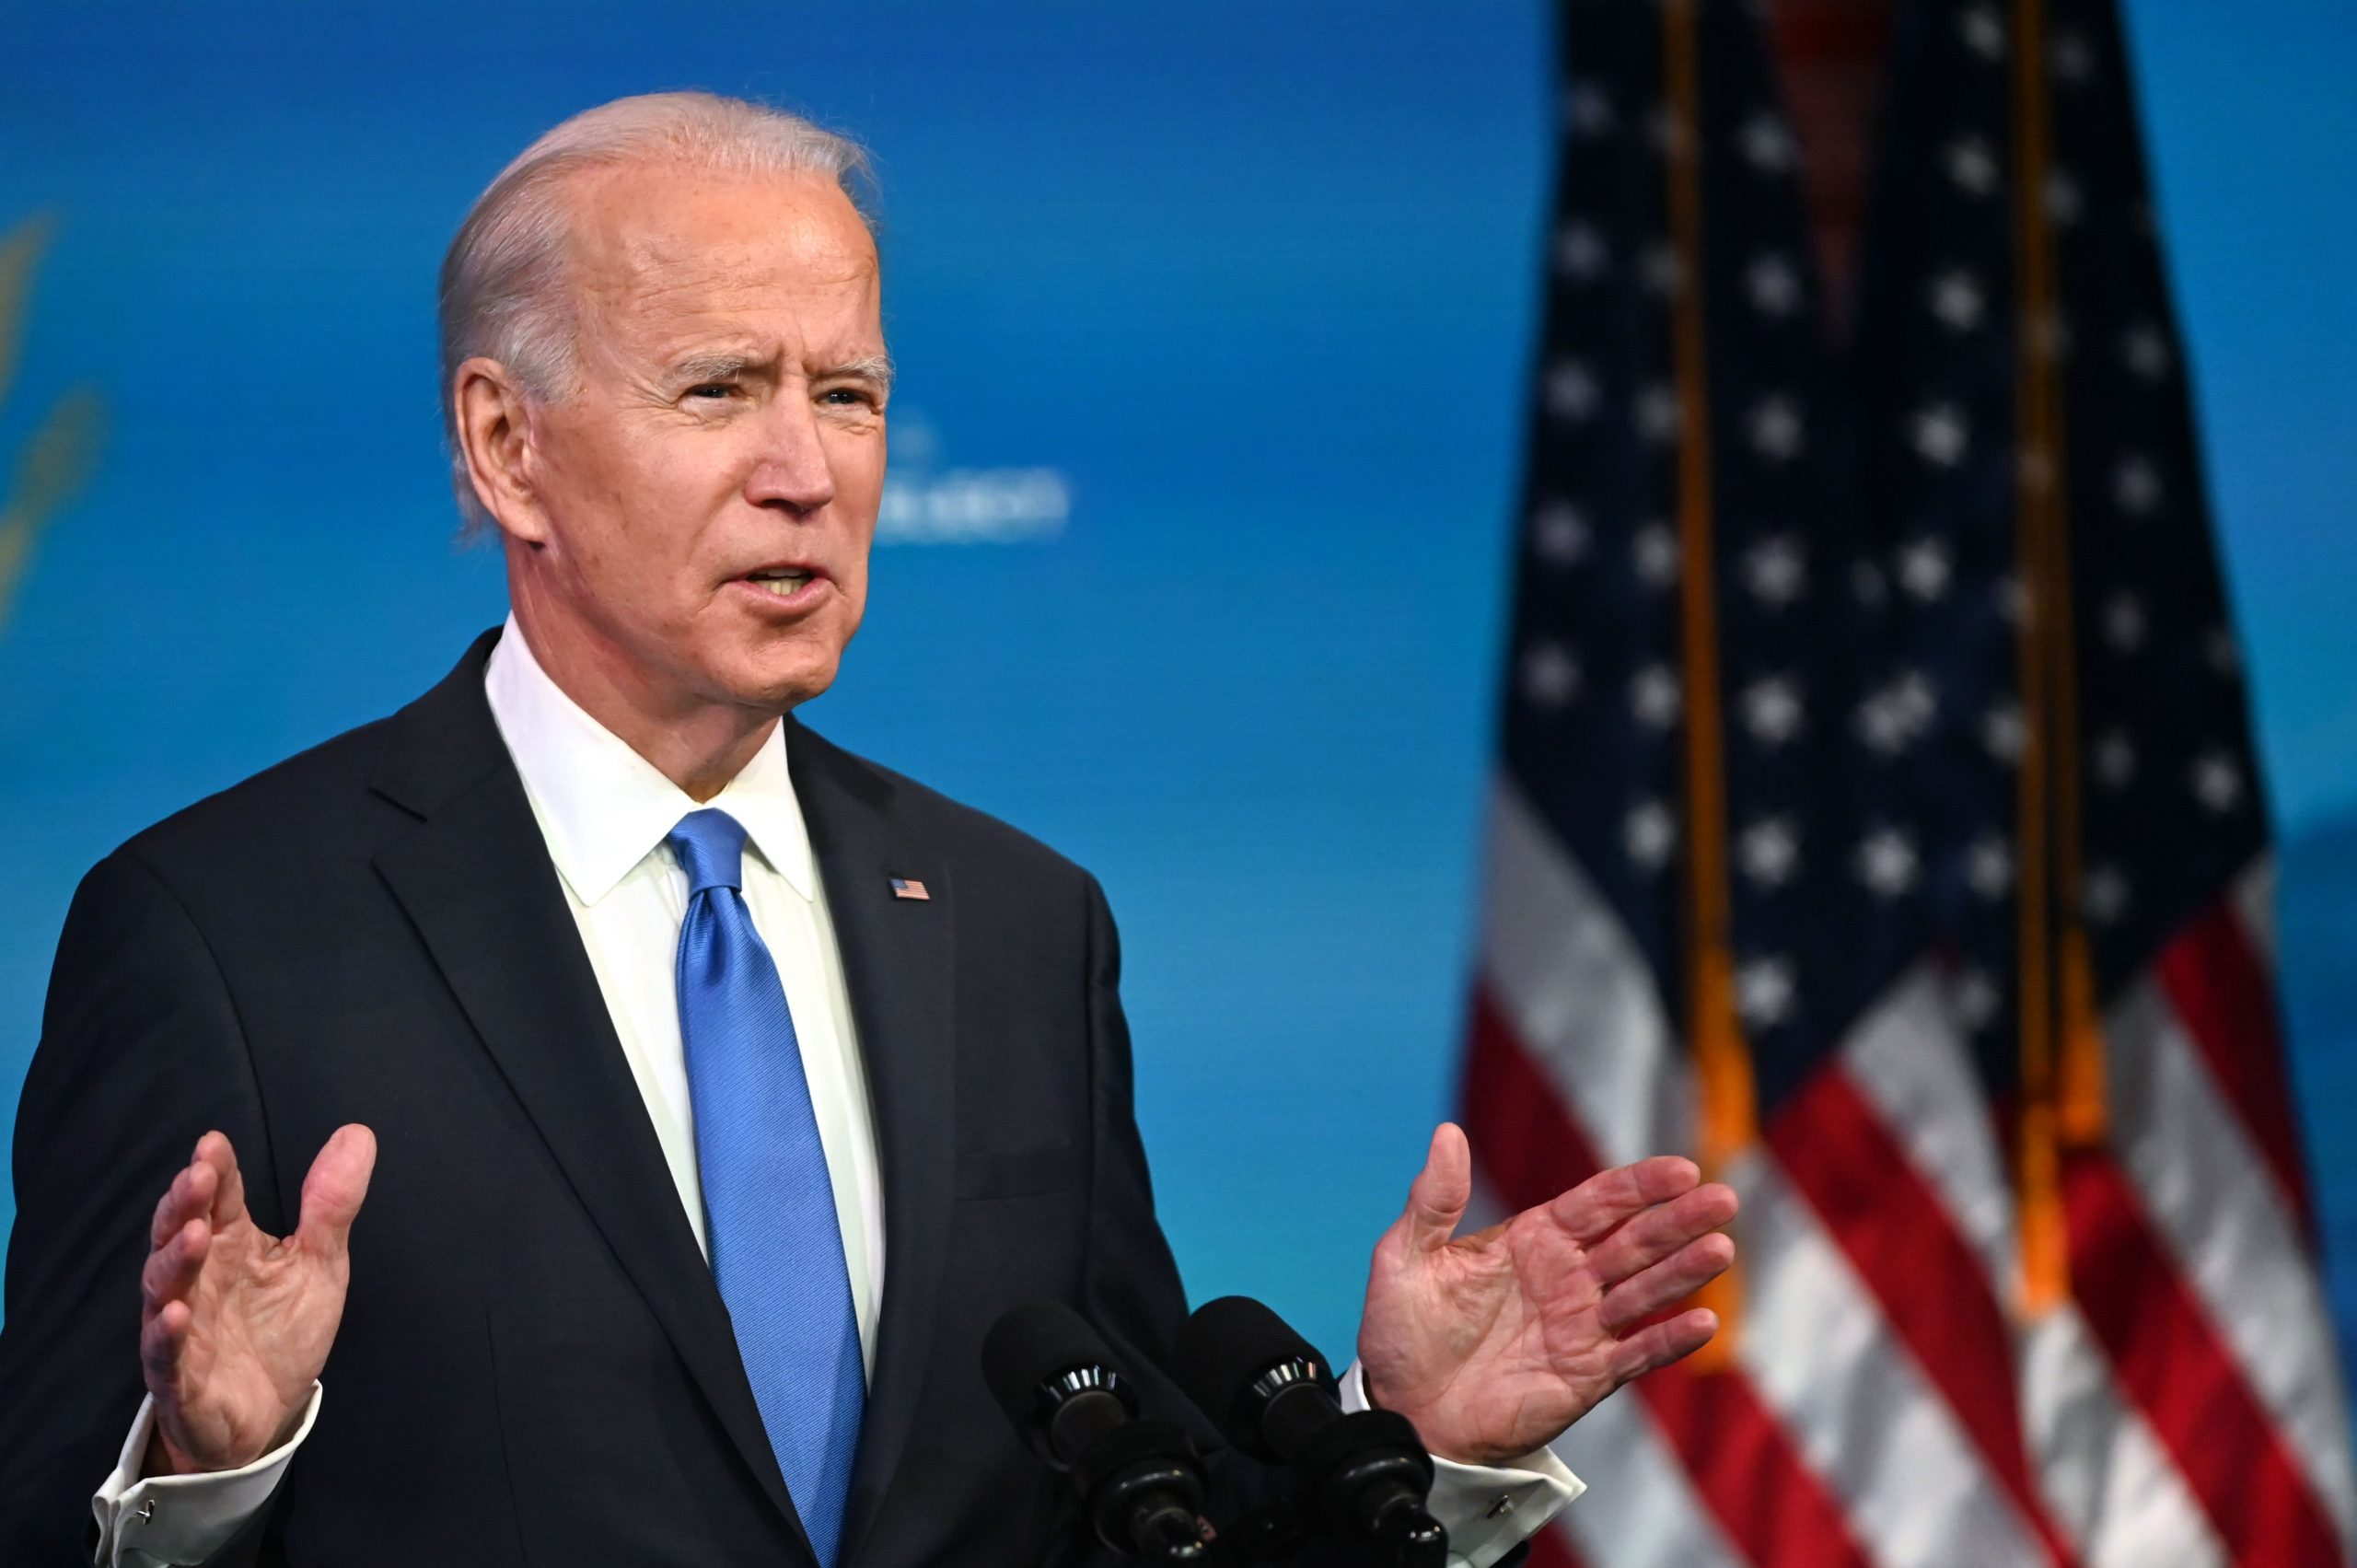 How Biden will approach the U.S. battle with China over technology